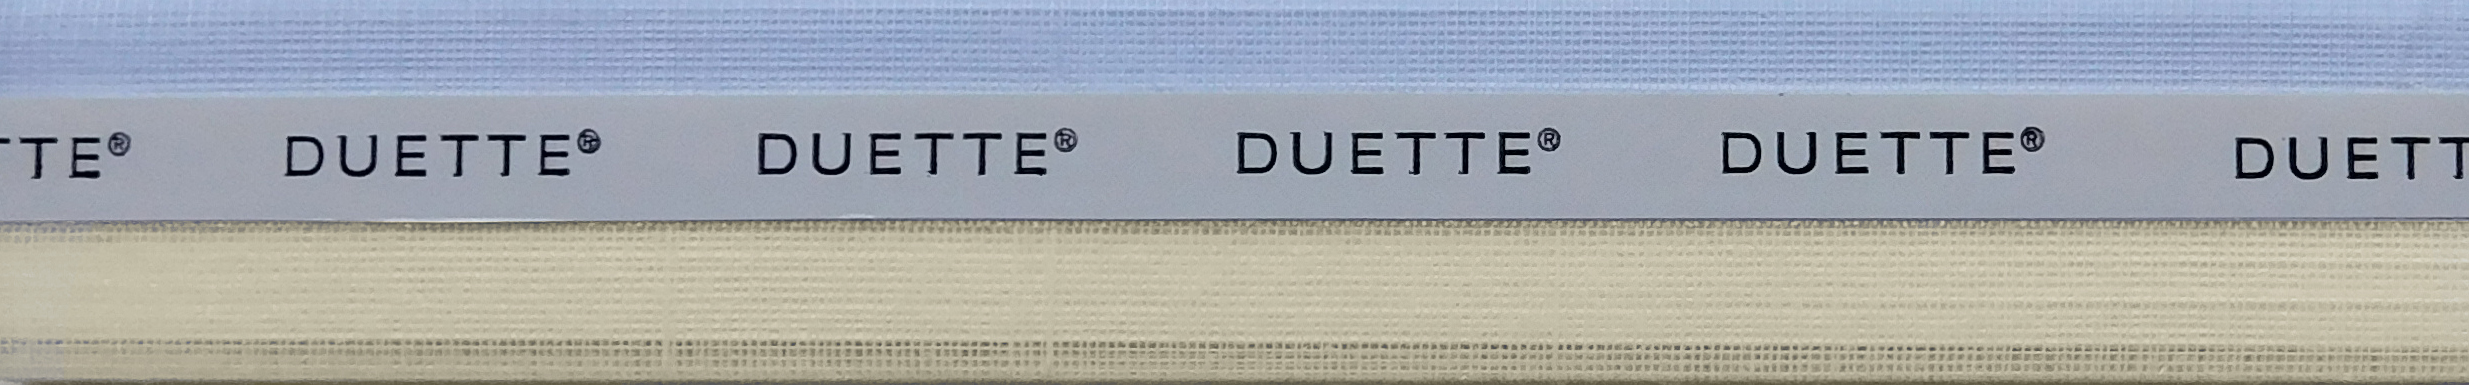 Batiste Sheer Papyrus Duette Blind Sample Fabric